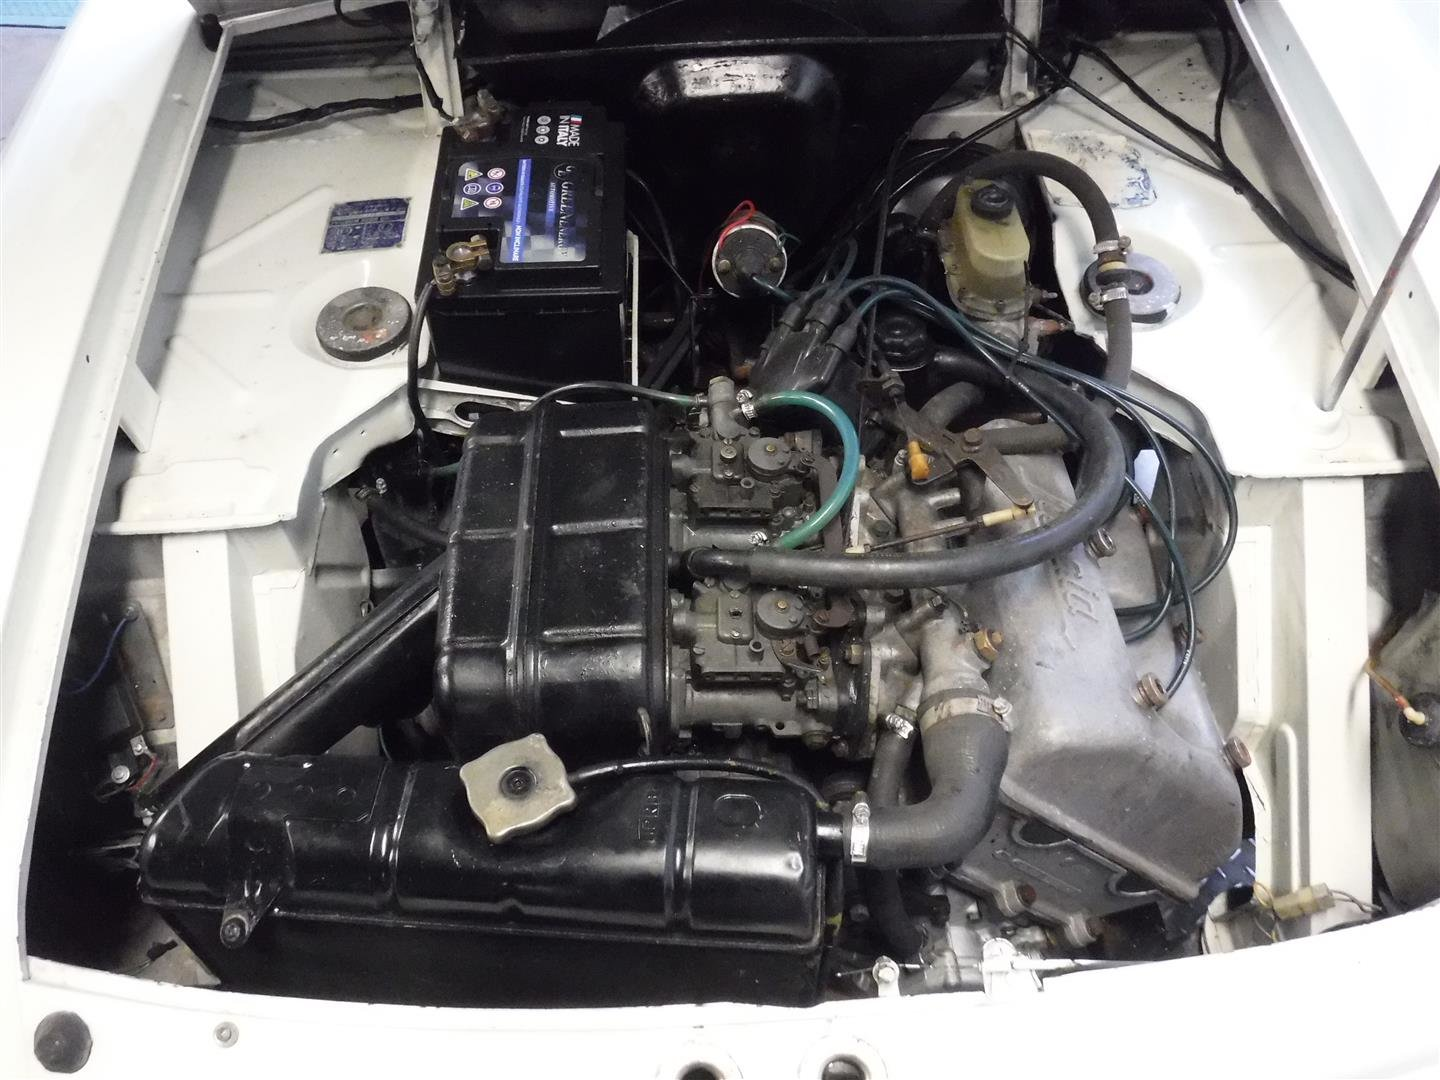 1970 Lancia Fulvia 1.3S '70 For Sale (picture 3 of 6)